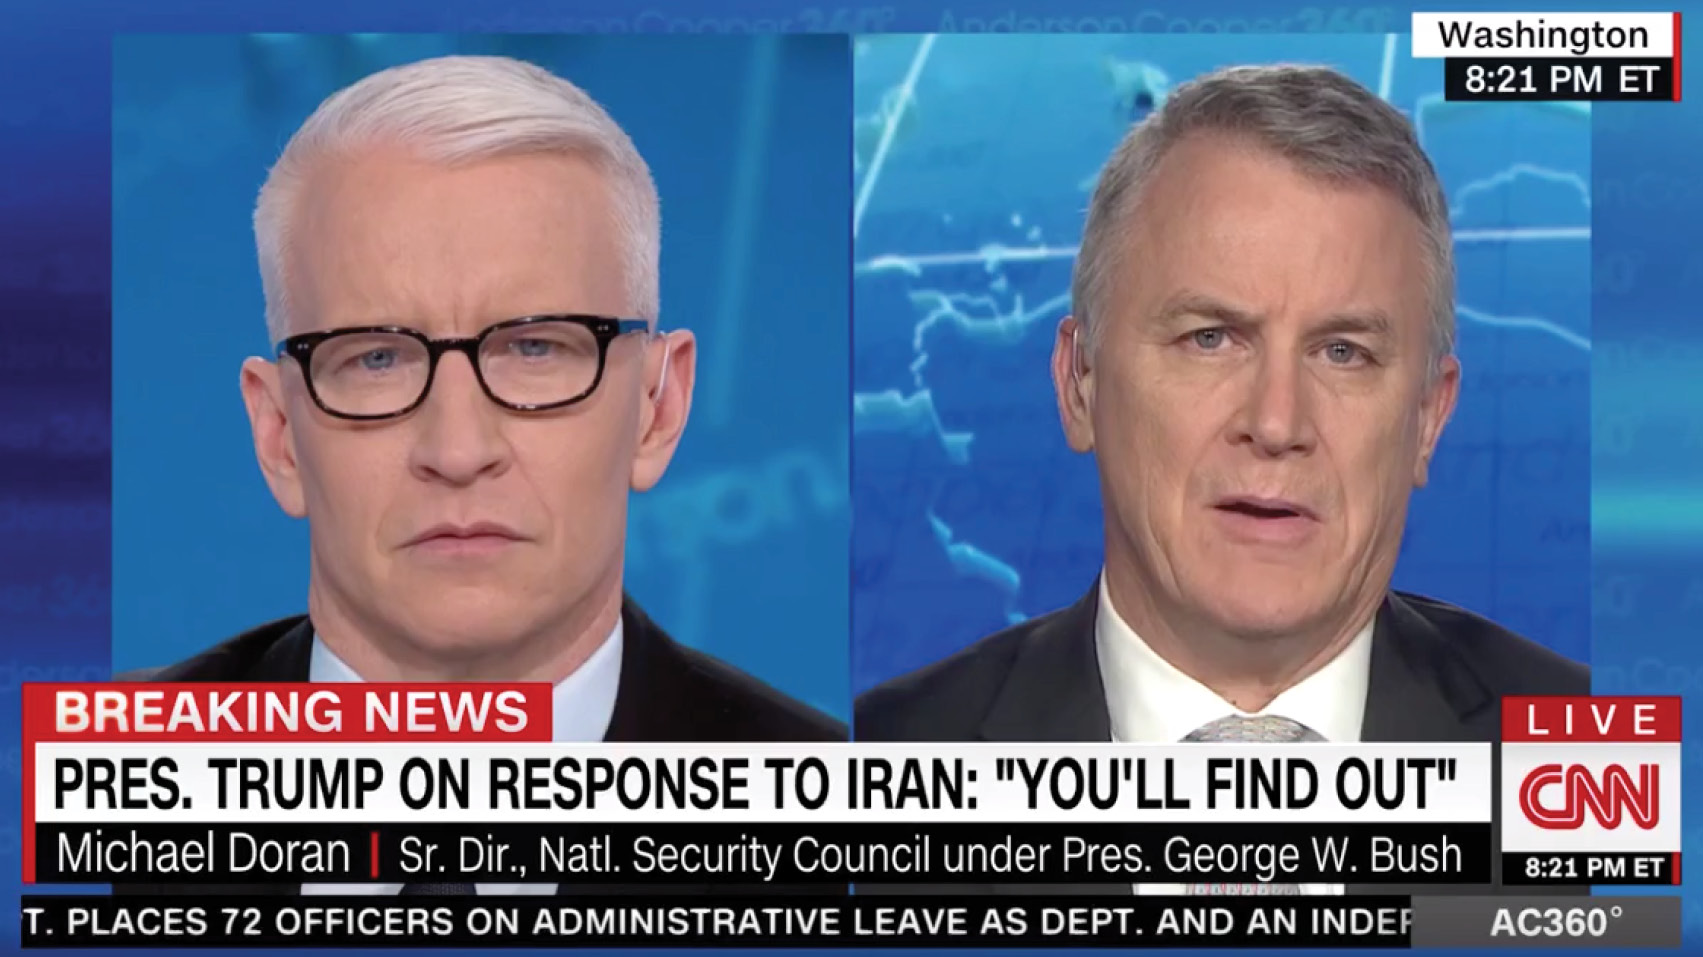 Mike Doran discusses recent Iranian provocations and President Trump's response options.